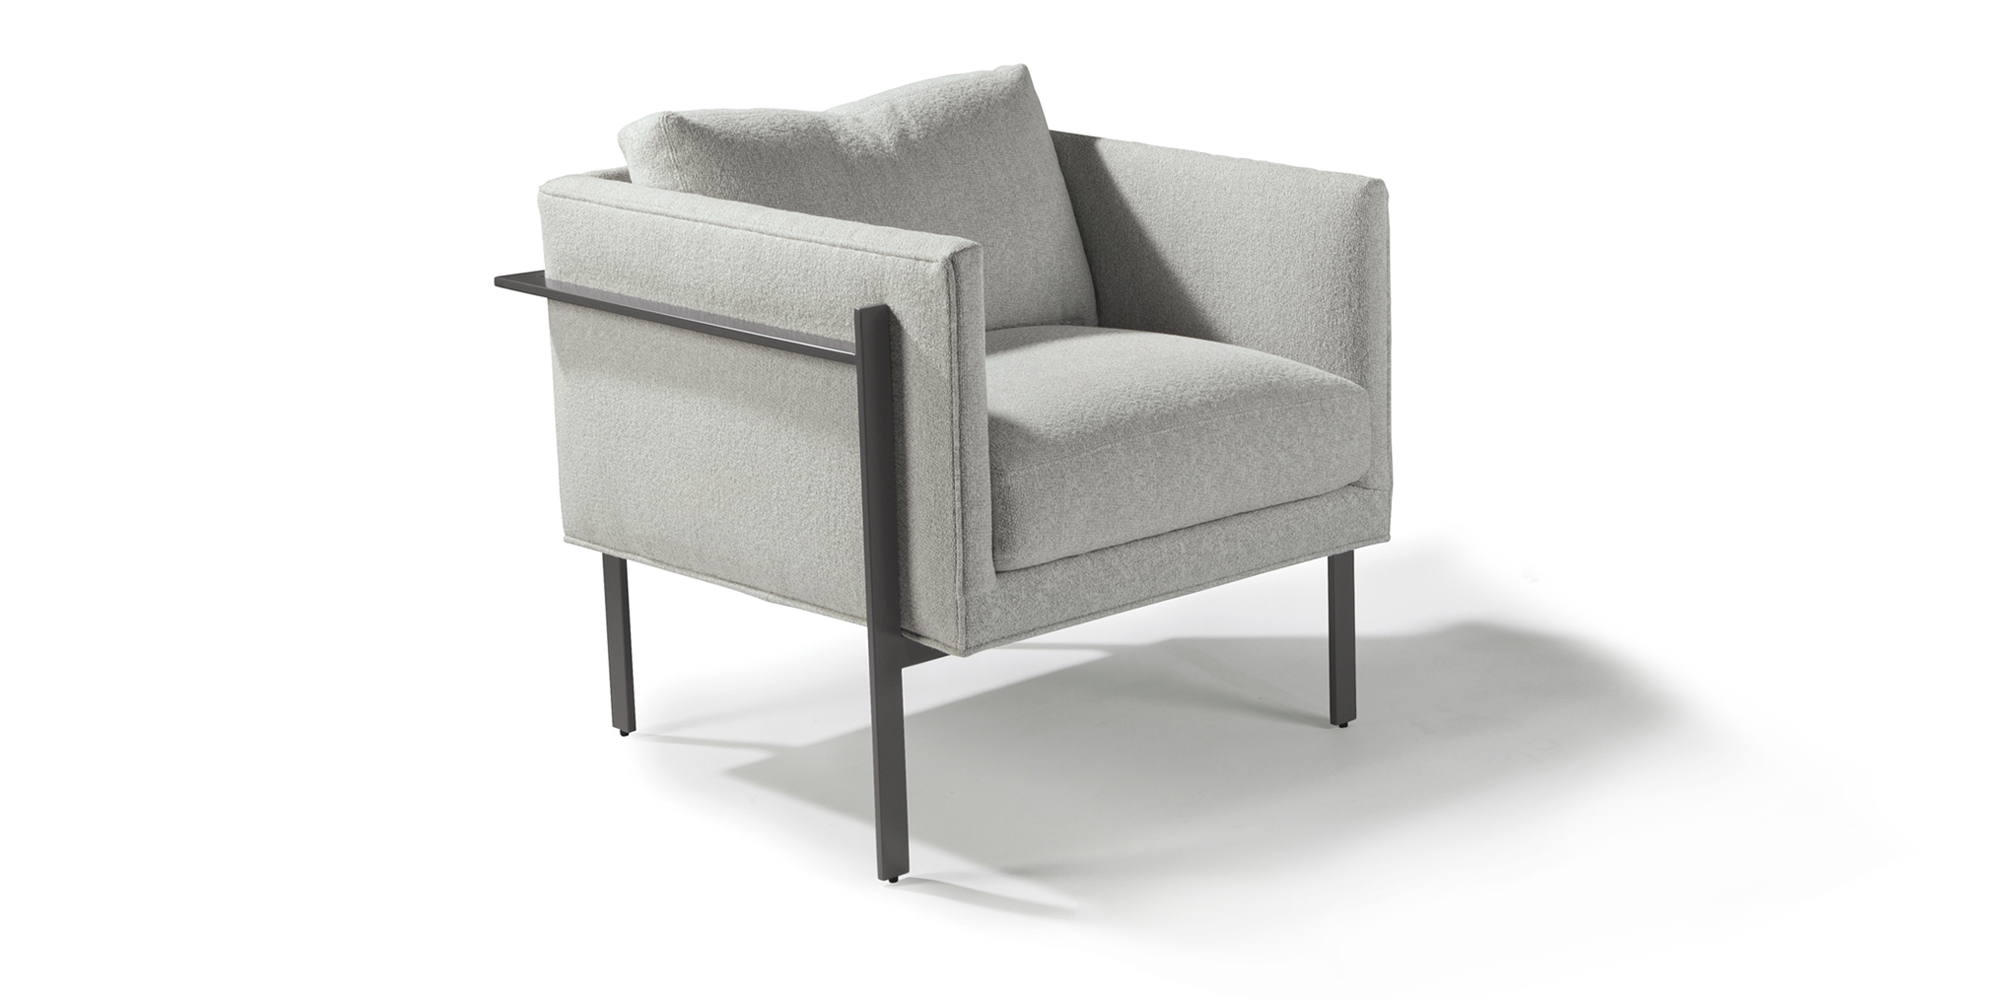 Drop In Lounge Chairs (Gray Powder Coat)